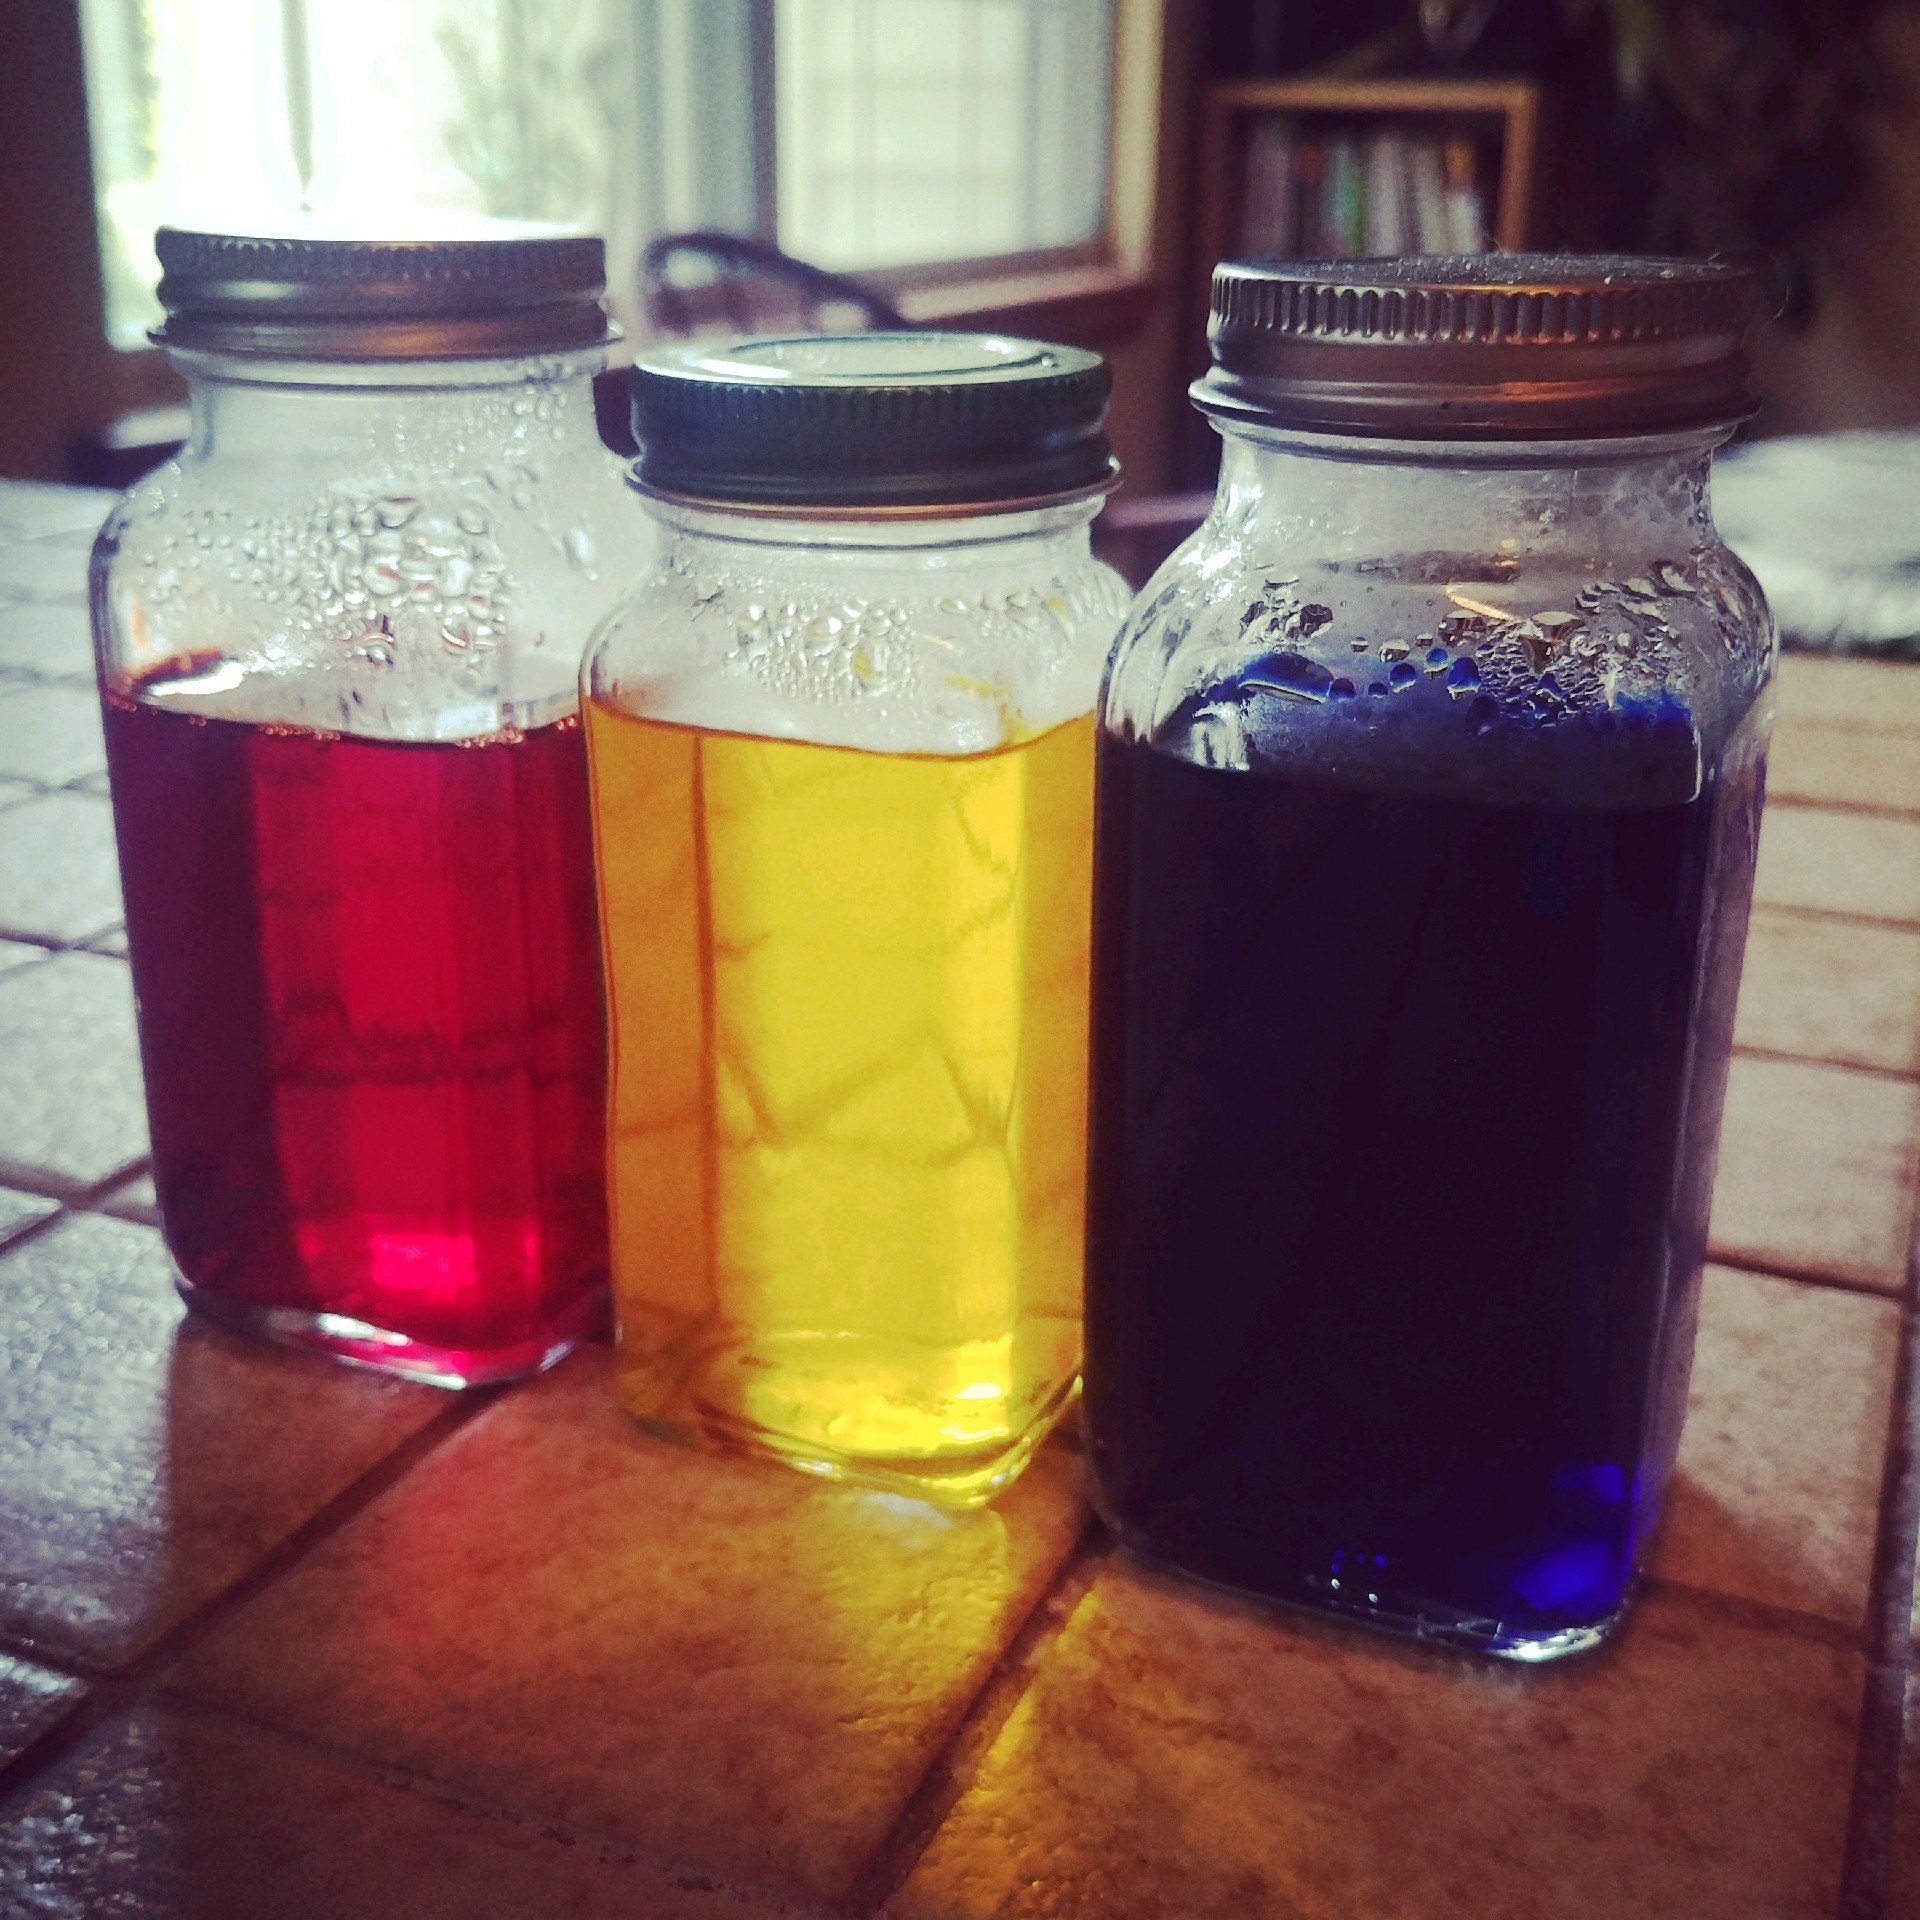 You don't need to buy special jars, anything will do. Even spice jars. You just need something to dissolve your dye.